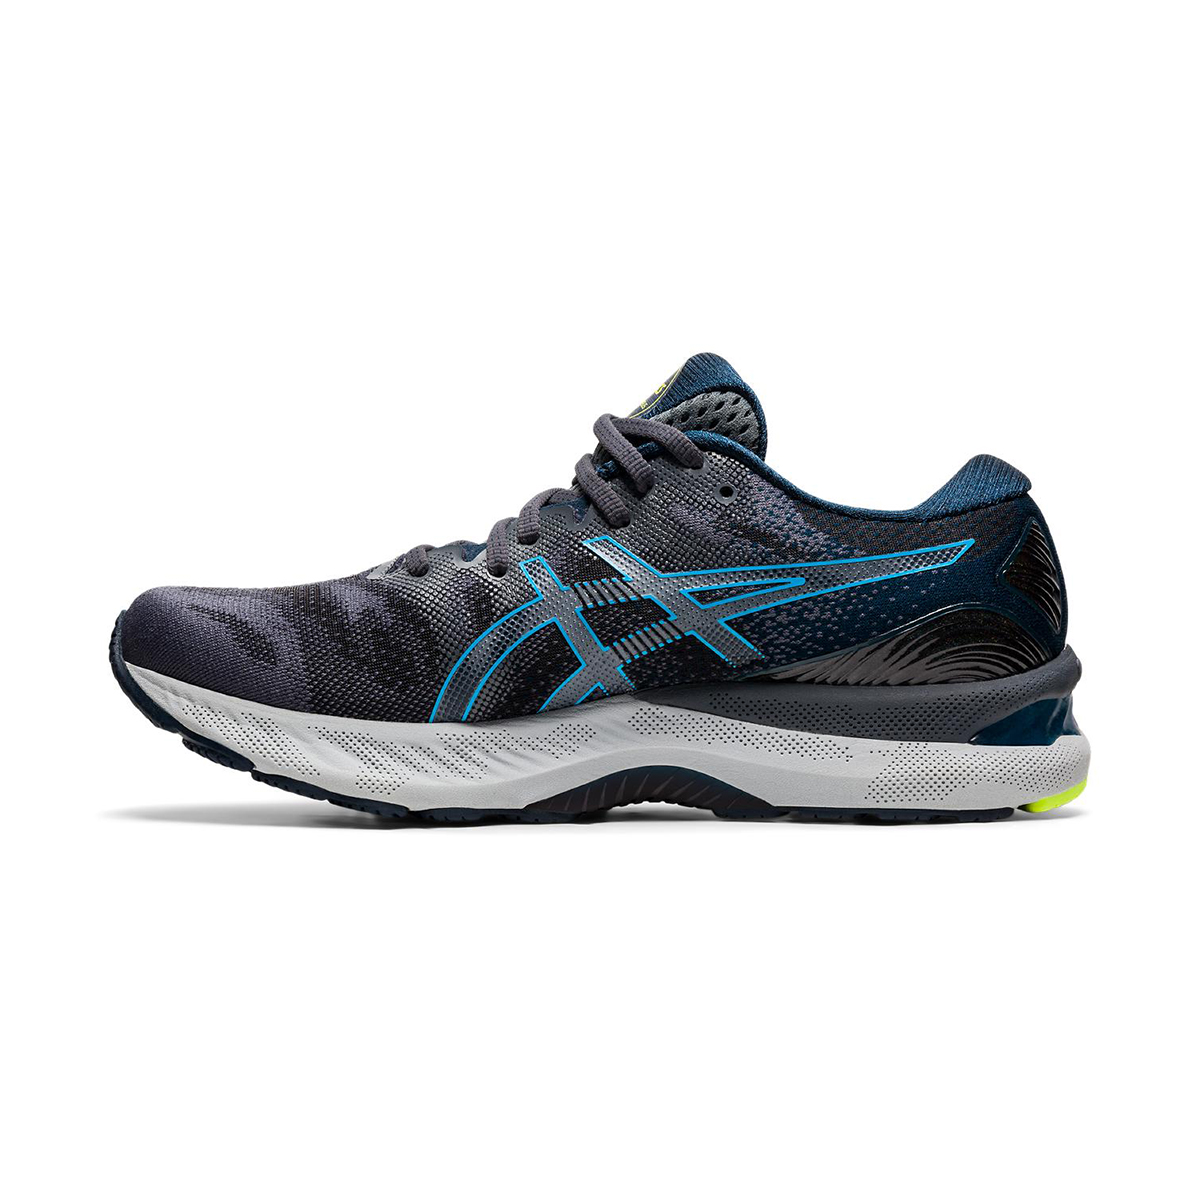 Men's Asics GEL-Nimbus 23 Running Shoe - Color: Carrier Grey/Digital Aqua - Size: 8.5 - Width: Regular, Carrier Grey/Digital Aqua, large, image 2